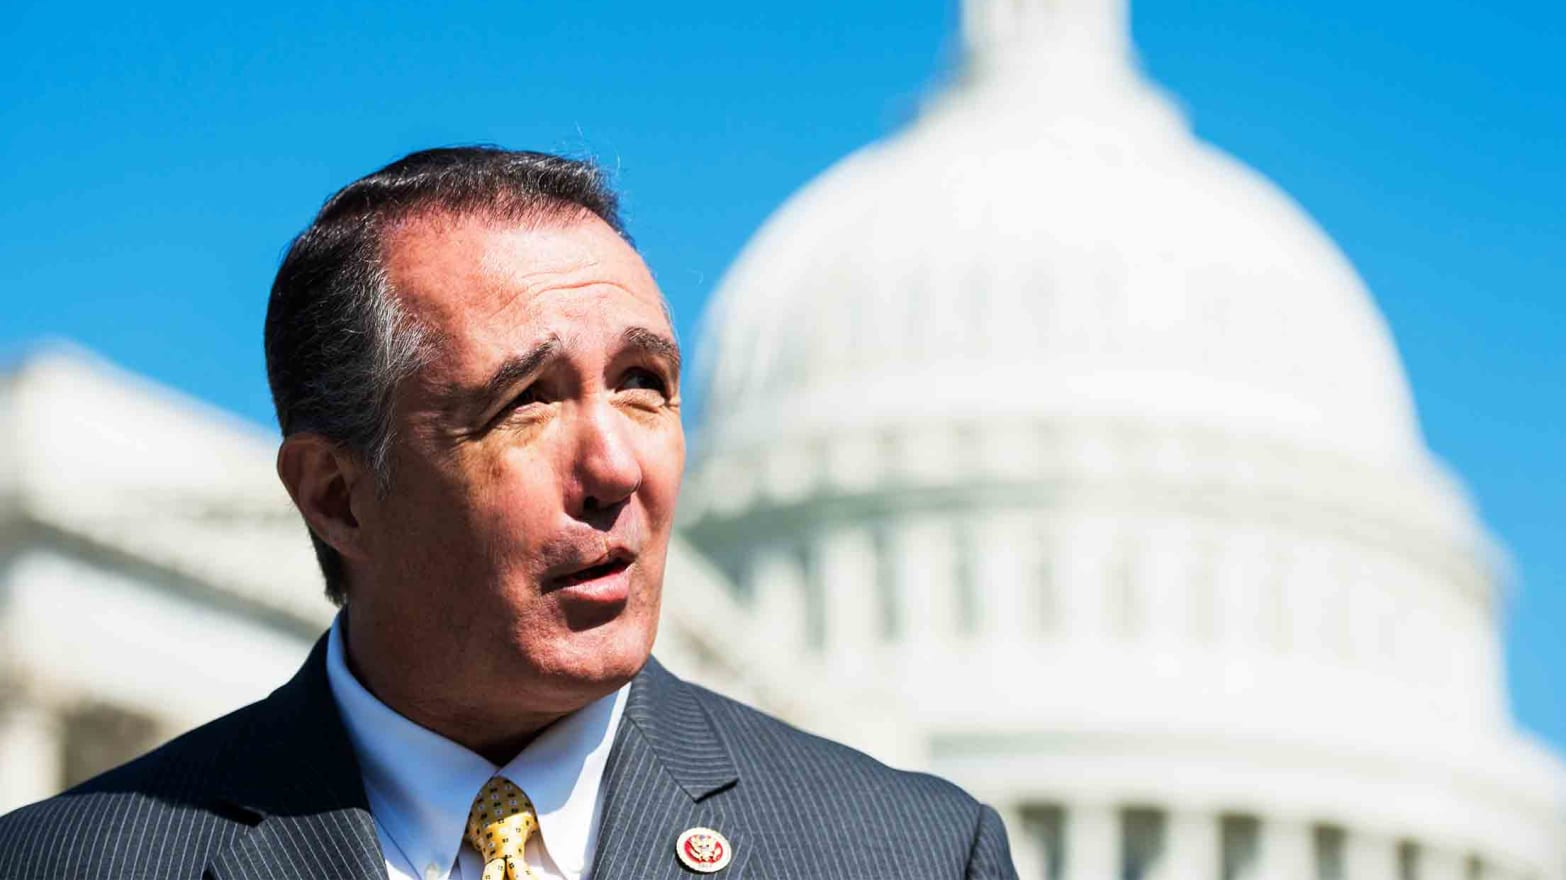 Aide: Moral Crusader Trent Franks Offered Staff $5 Million to Carry His Children